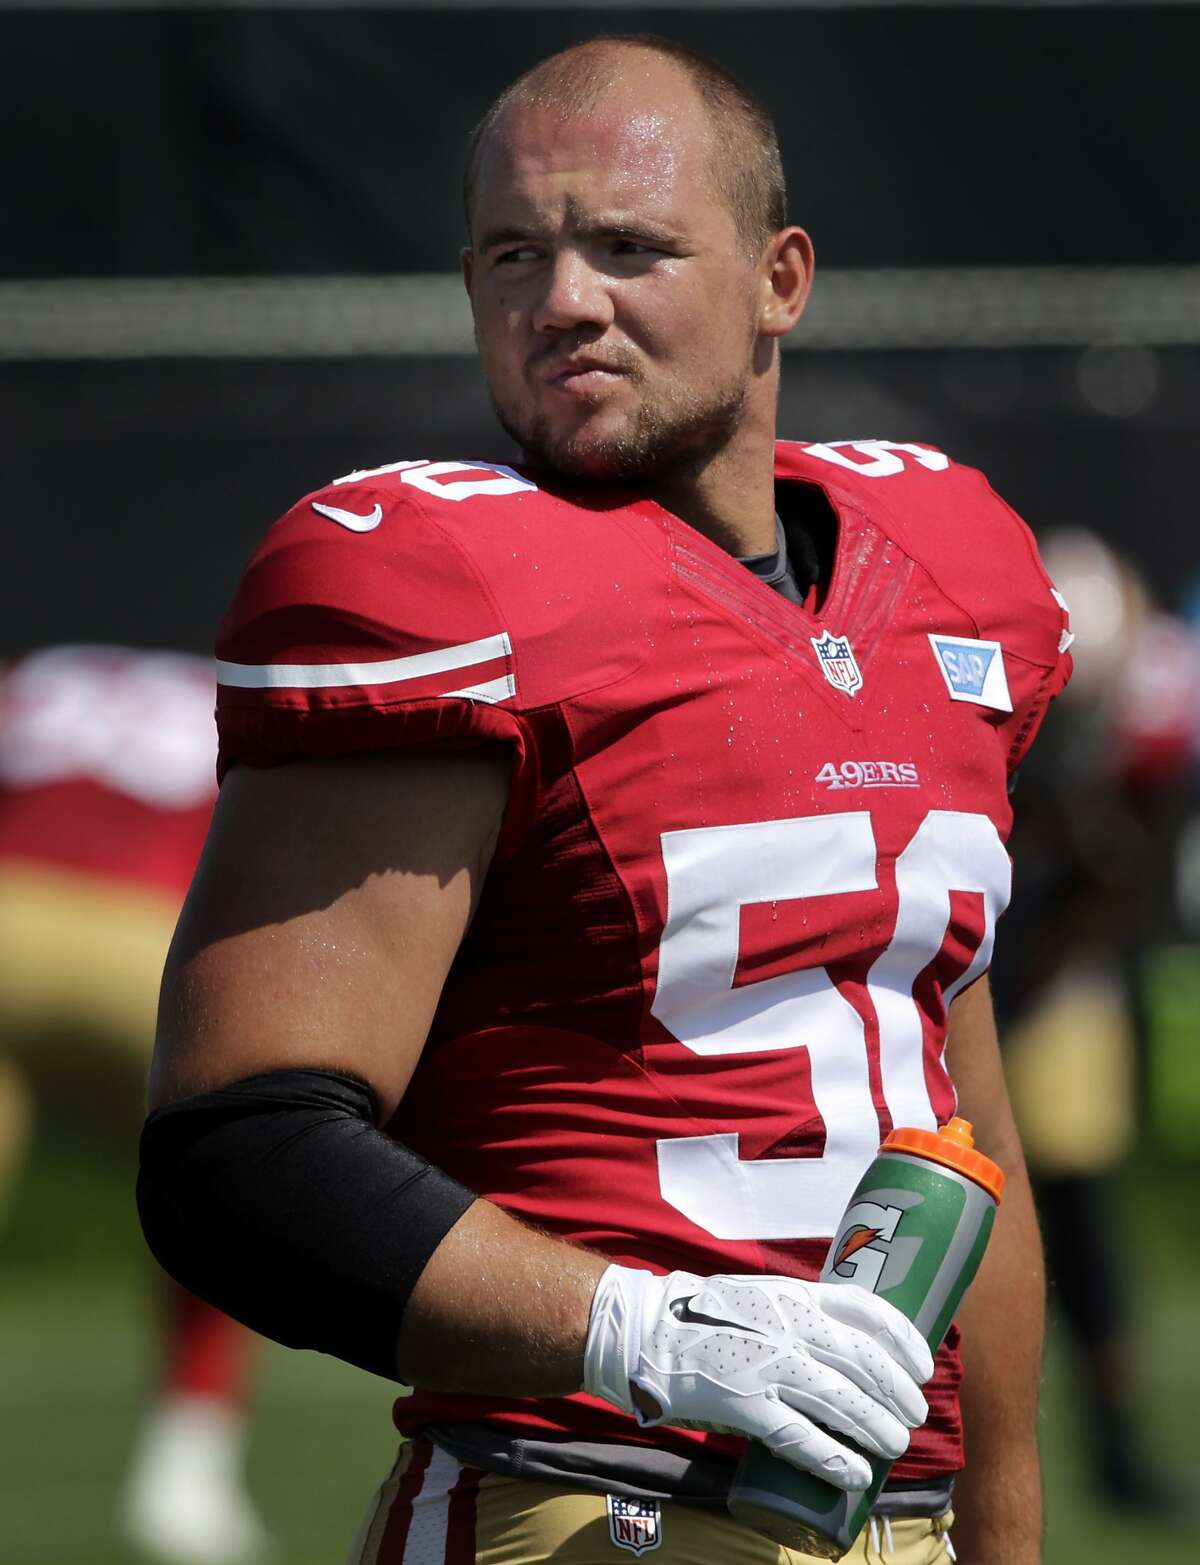 Linebacker Chris Borland stays cool during the San Francisco 49ers training camp in Santa Clara, Calif. on Tuesday, July 29, 2014.